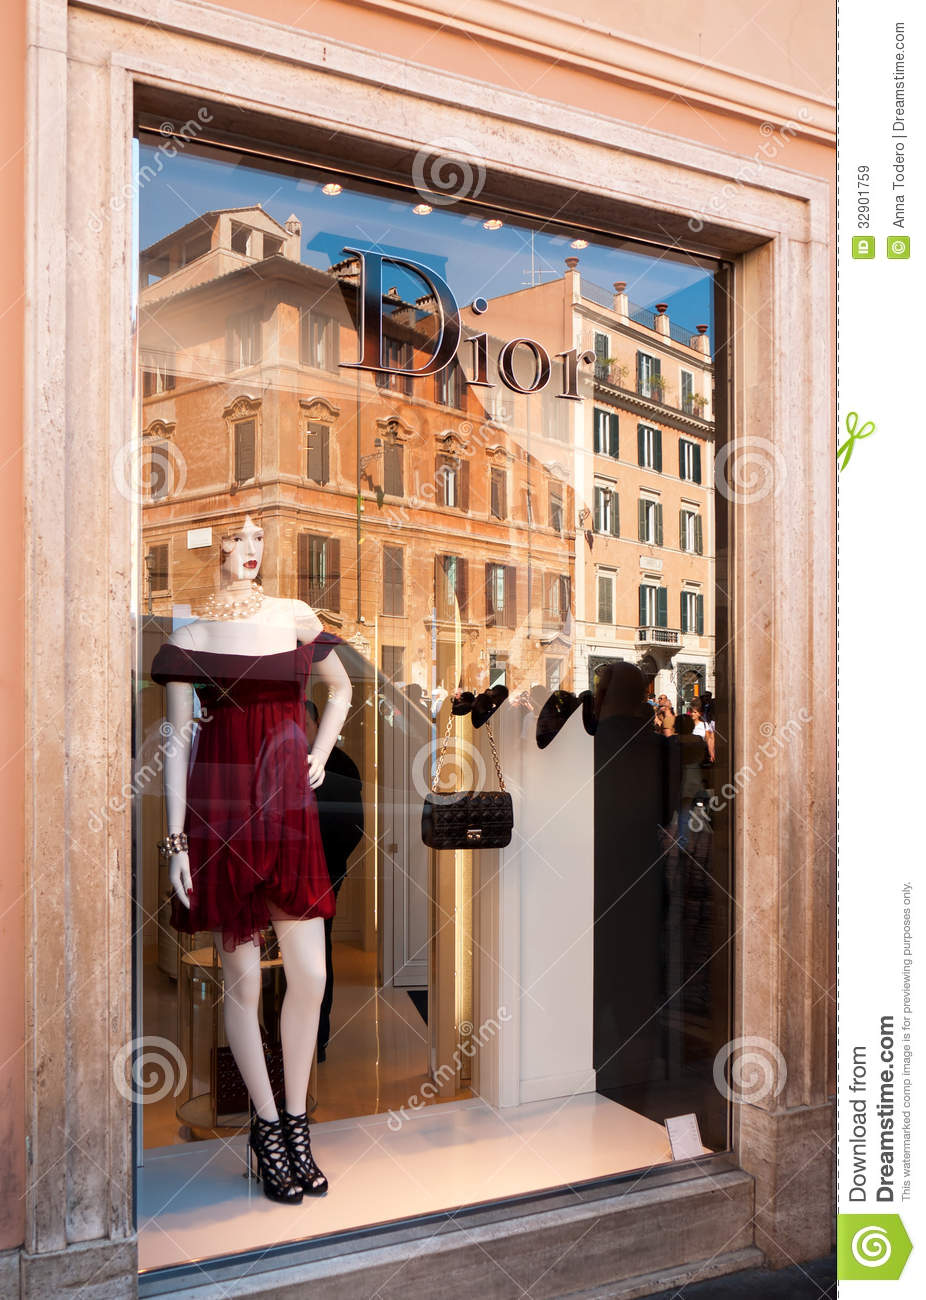 dior fashion store in rome italy editorial stock image image 32901759. Black Bedroom Furniture Sets. Home Design Ideas